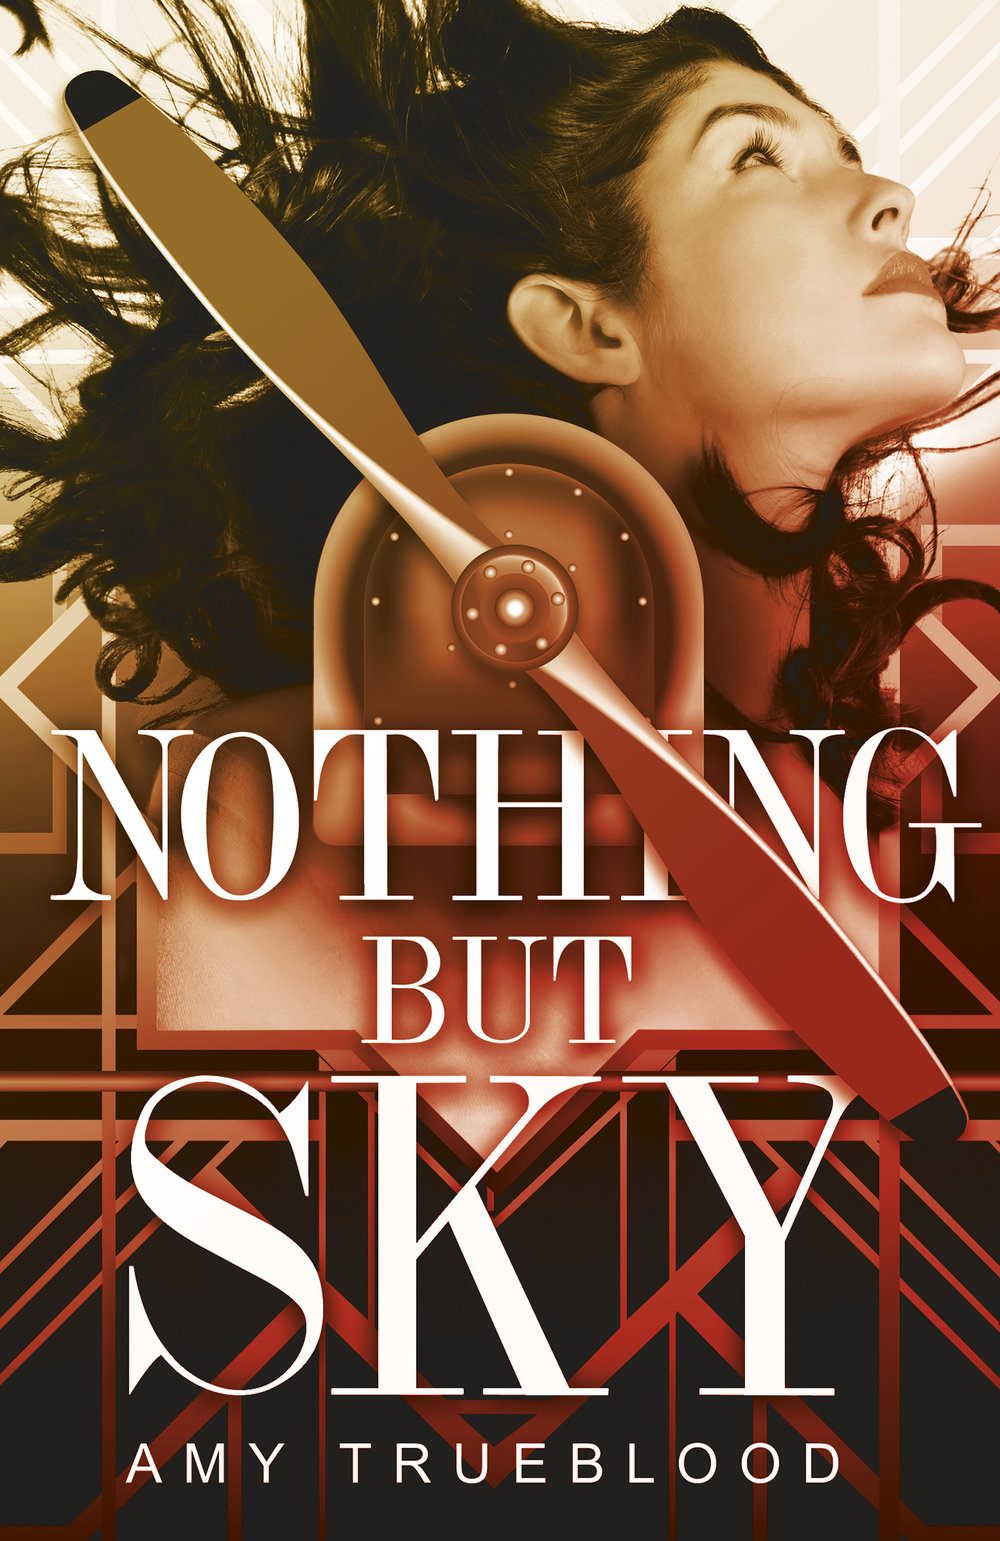 Trueblood -Nothing But Sky - Final Cover.jpg